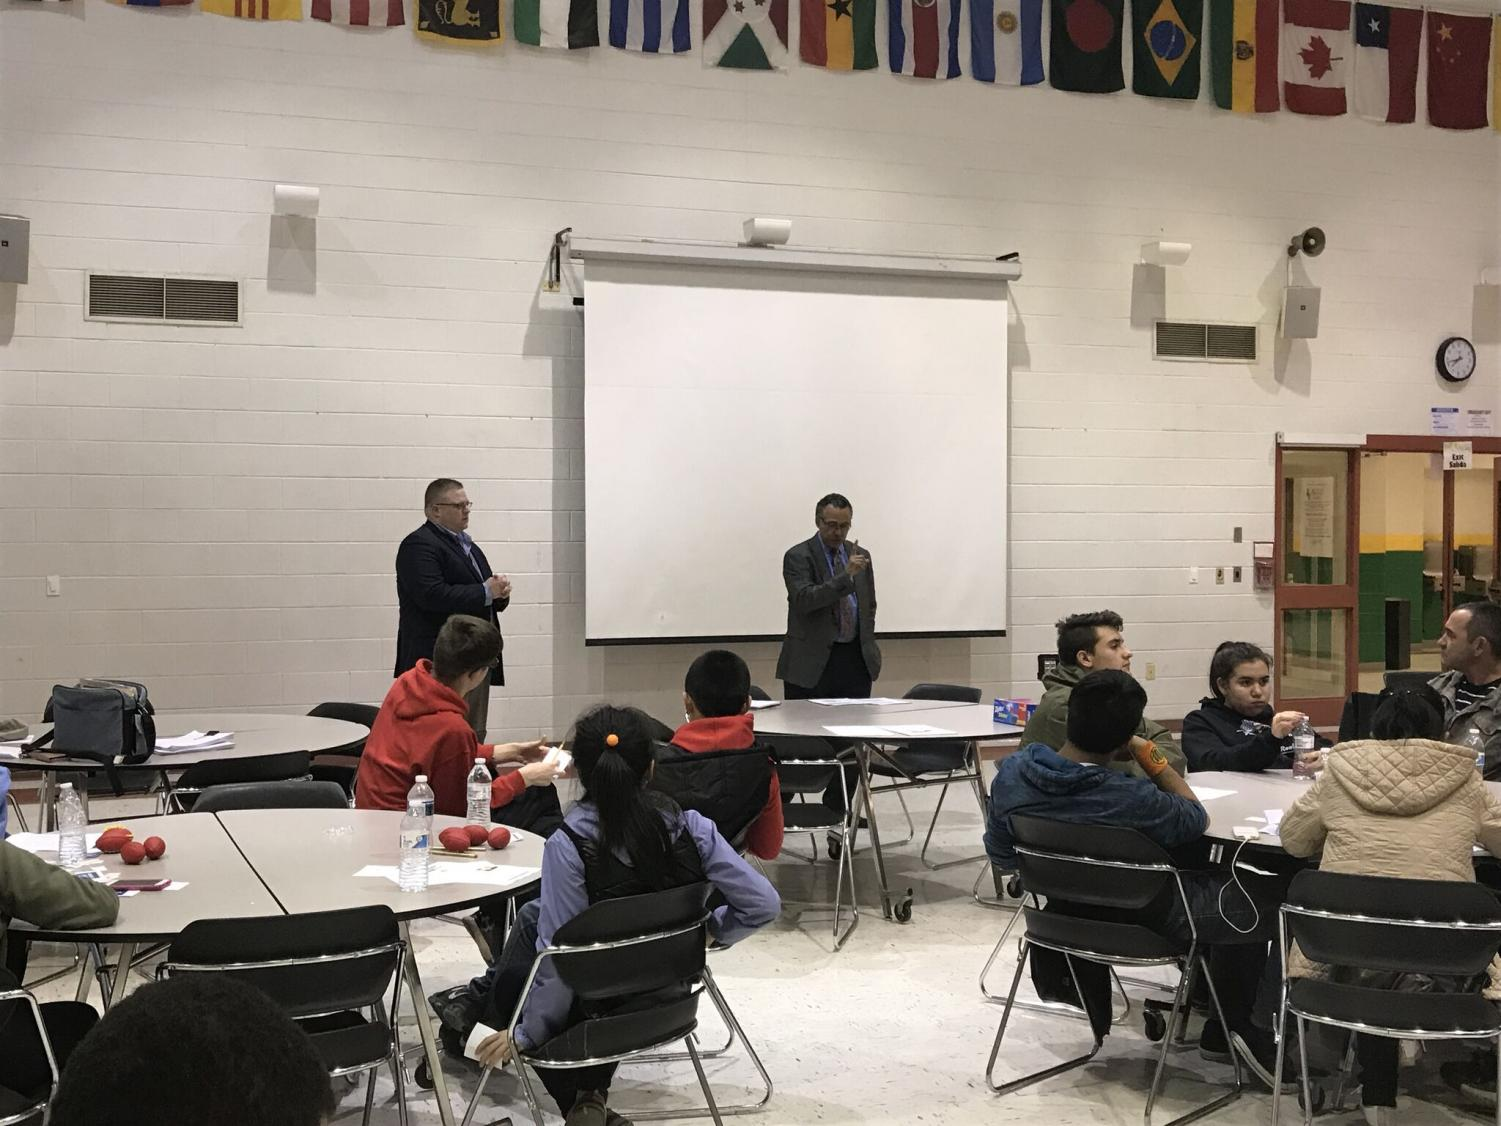 Elias Stoddard (right) and Raymond Crowel (left) answer questions during a Q&A at the Feb. 26 Montgomery County Save a Life Opioid Forum. They provided important facts about the extent of the opioid crisis, such as the fact that deaths due to opioid overdose doubled in the county from 2015 to 2016, and have continued to rise throughout 2017. Photo by Sydney Miler.